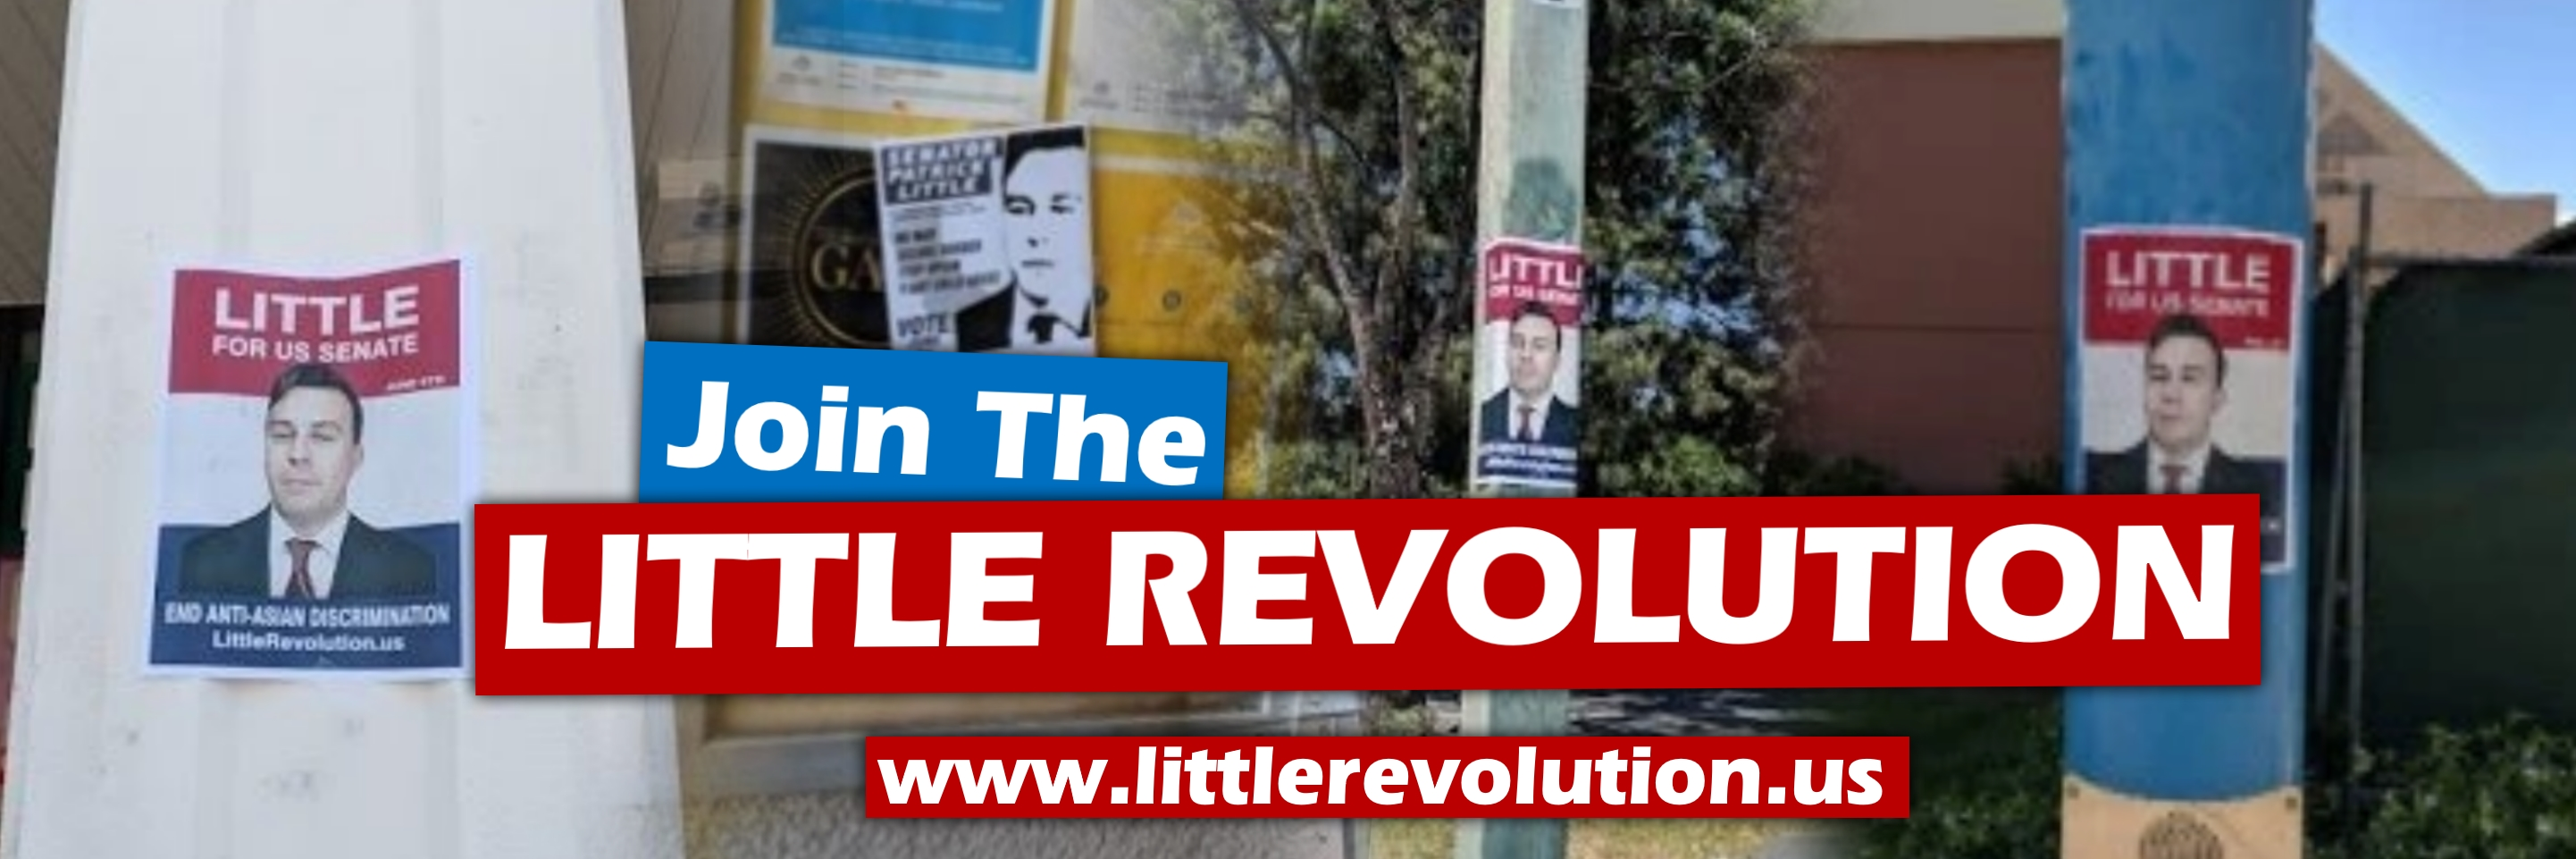 join the Little Revolution flyering effort